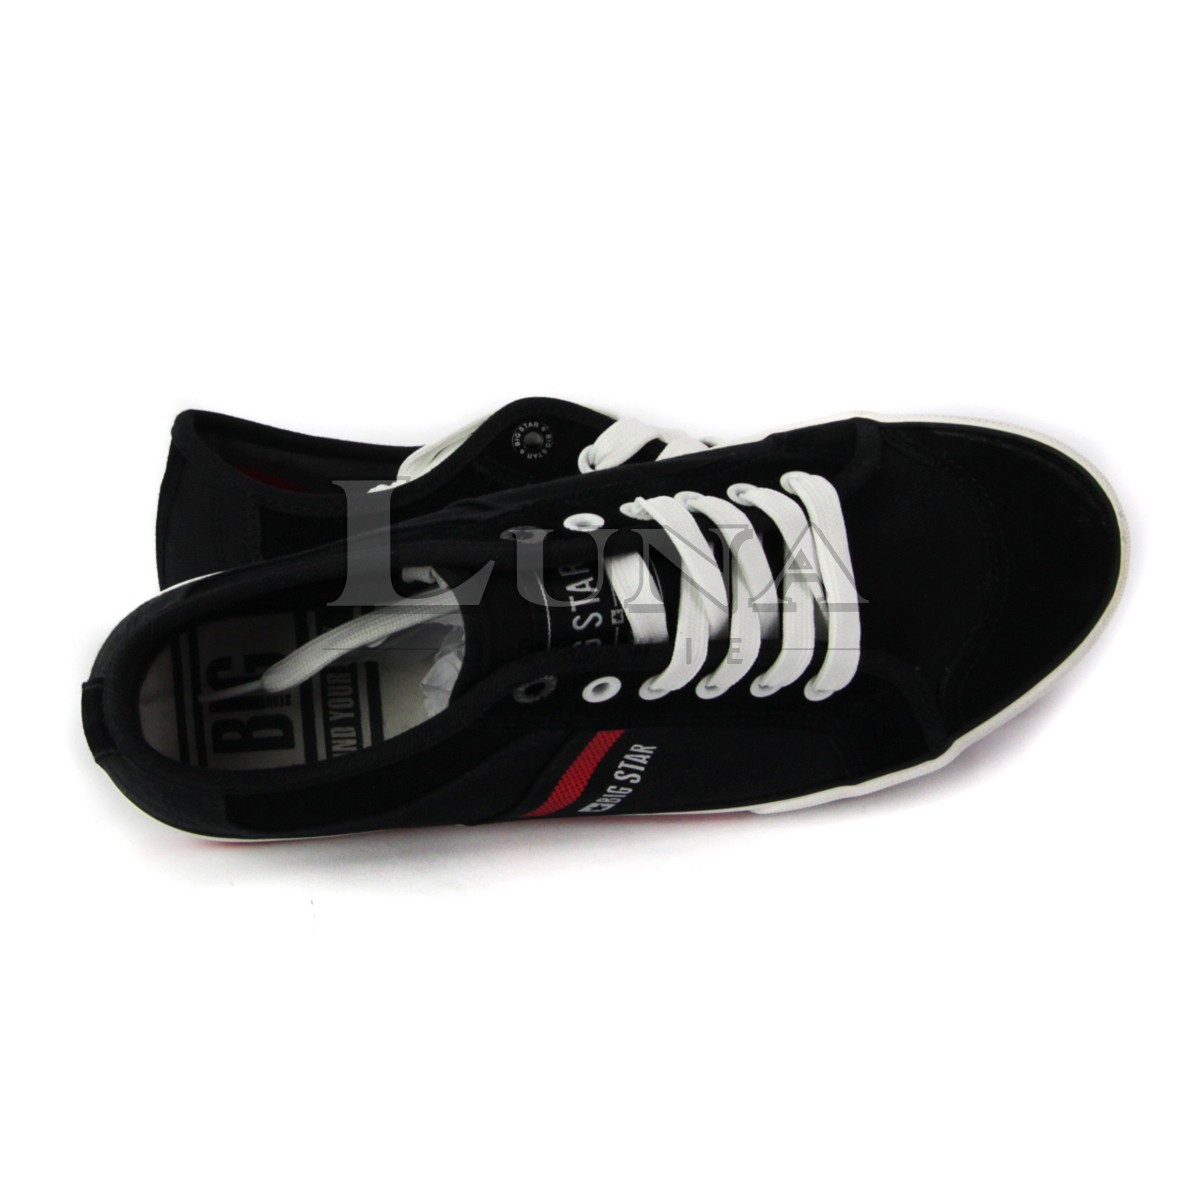 Tenis Big Star - W174546 Black kspNNZBGir